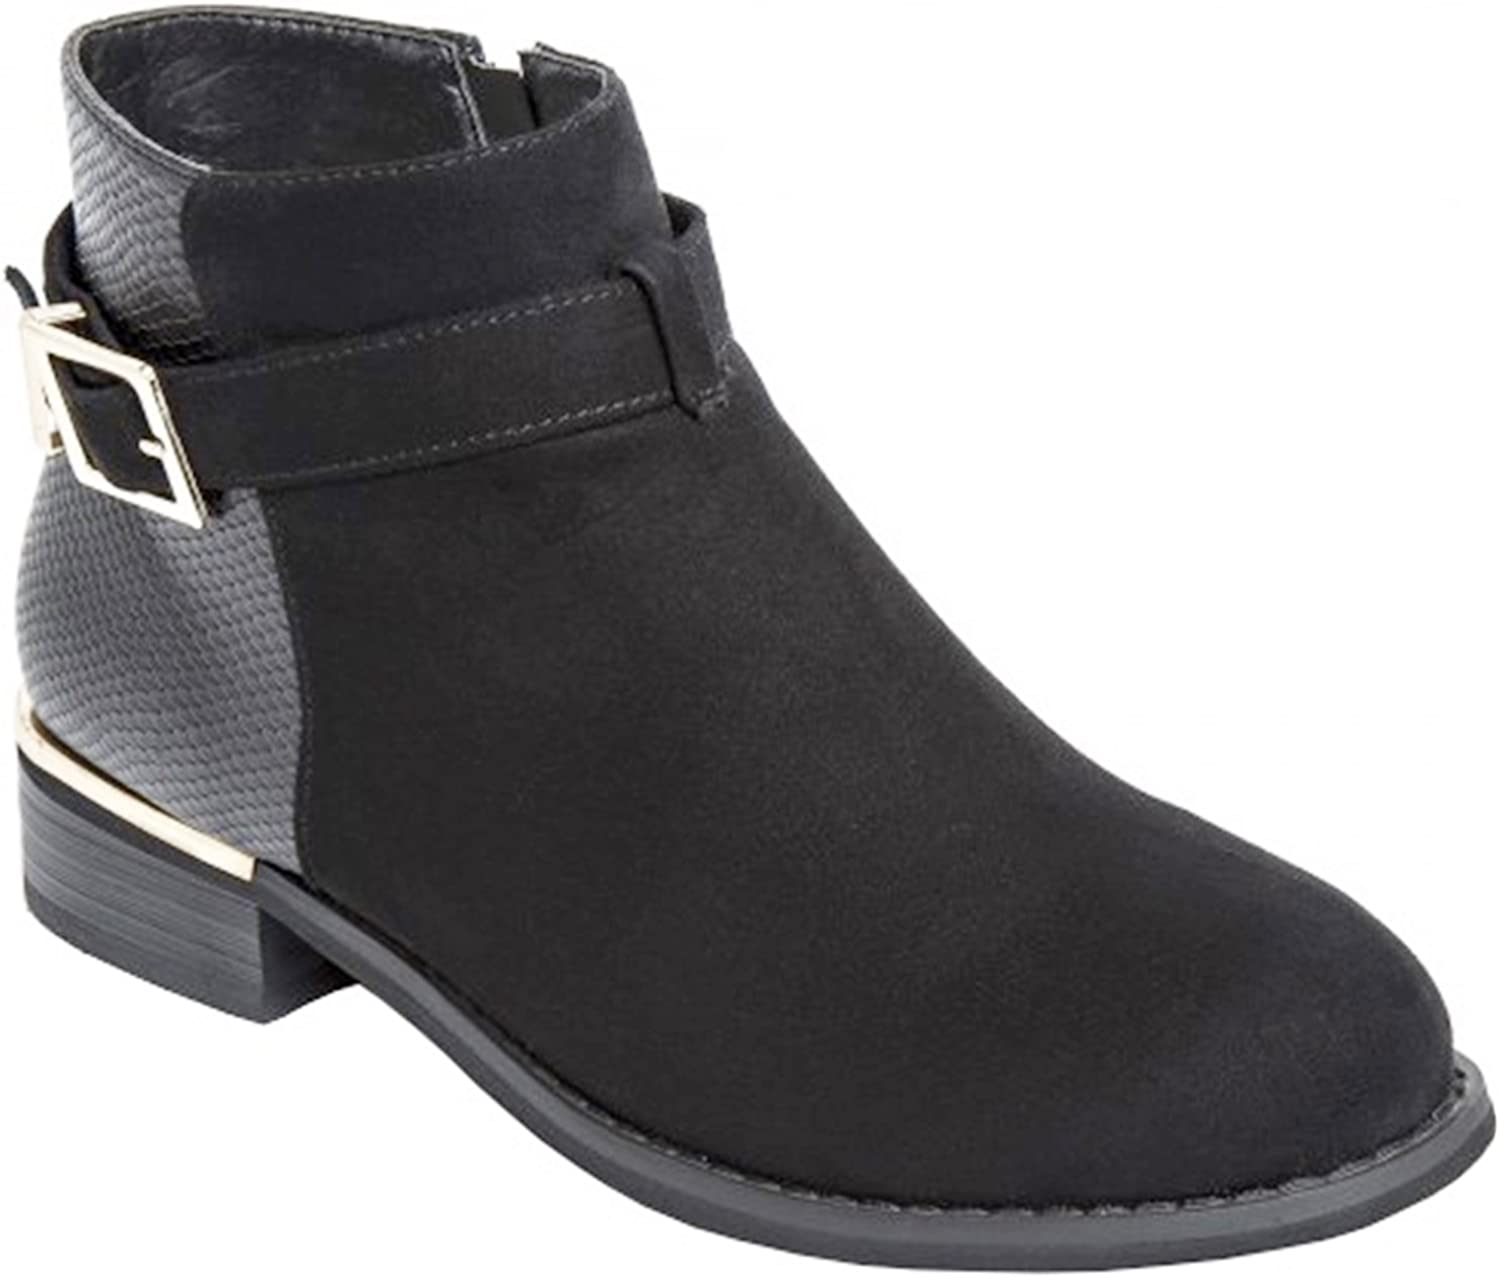 Ladies Ankle Boots with Buckle